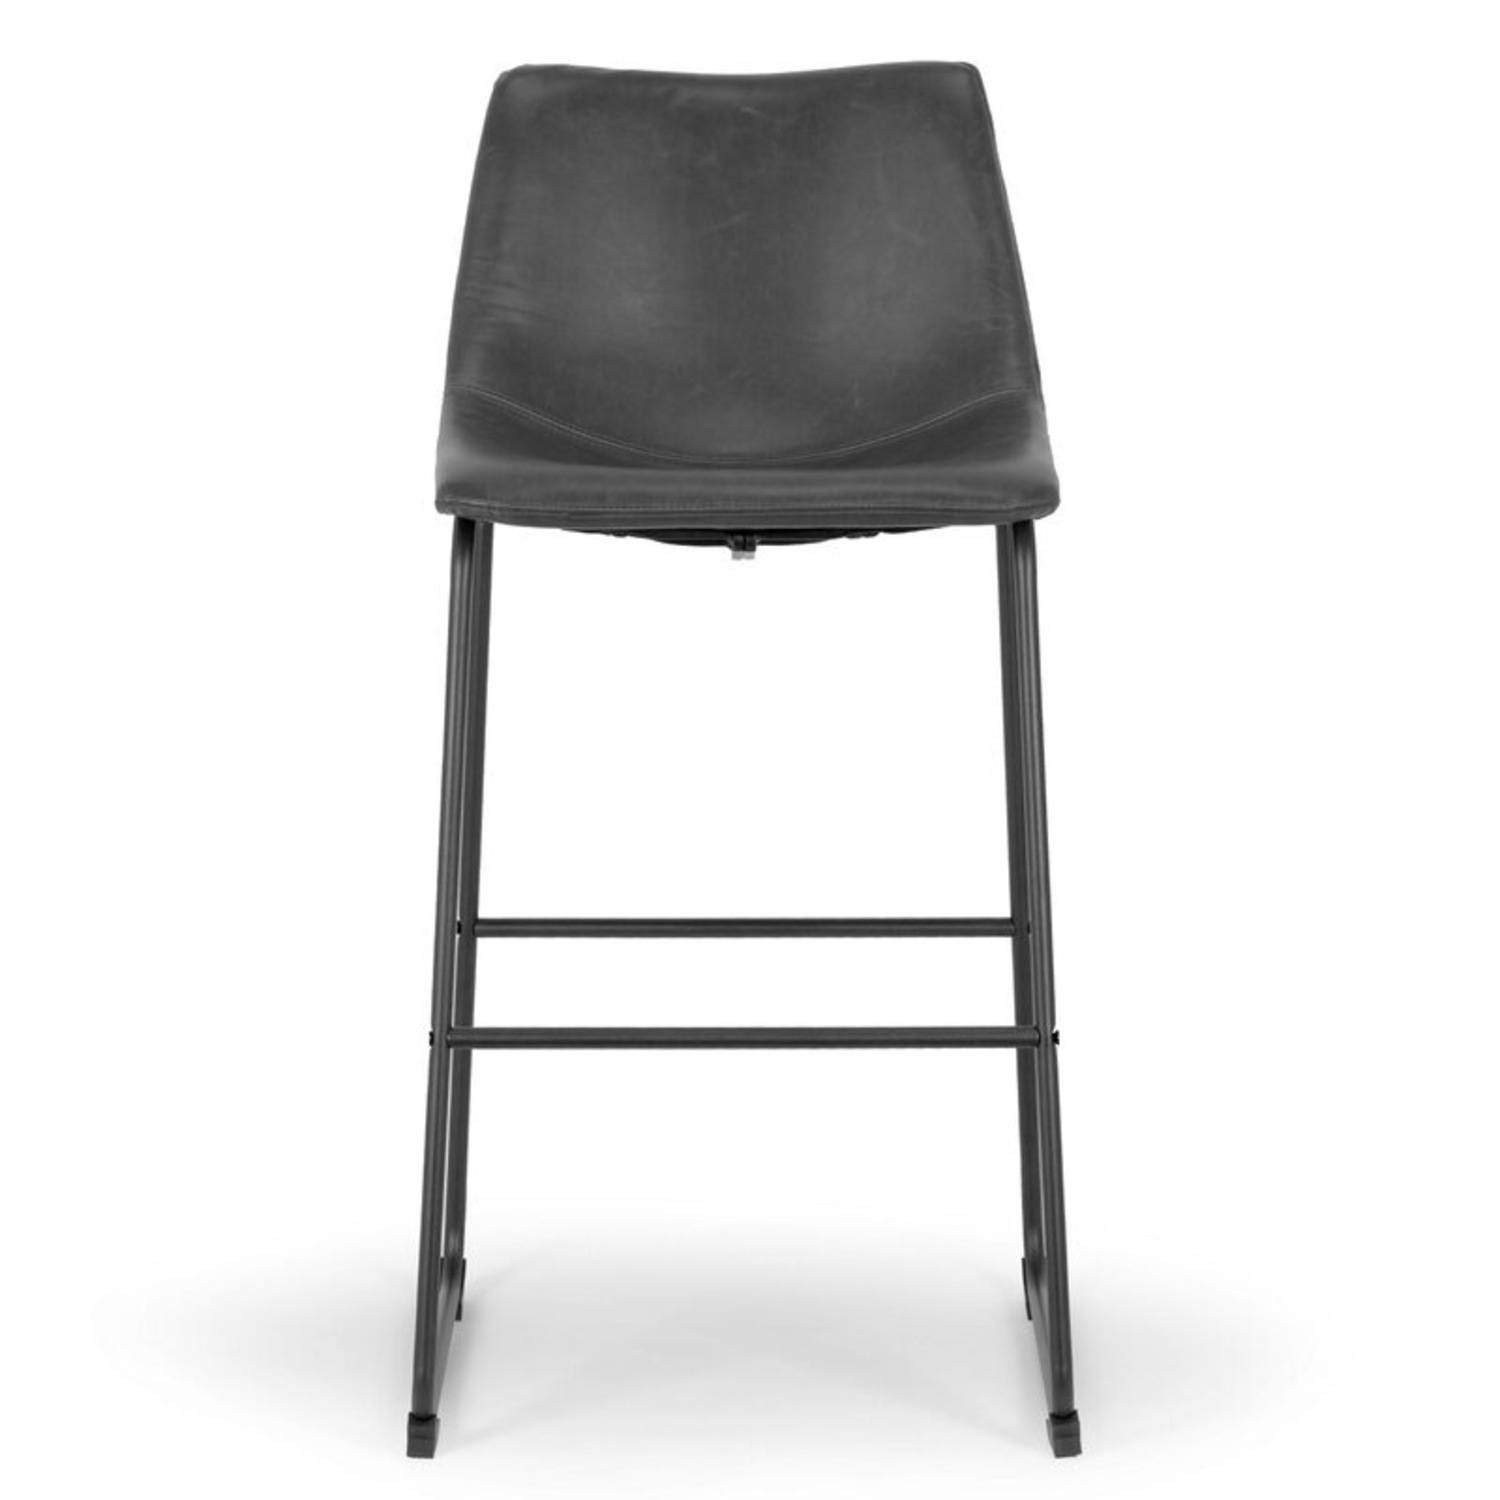 Wayfair Faux Leather Bar Stools - image-2